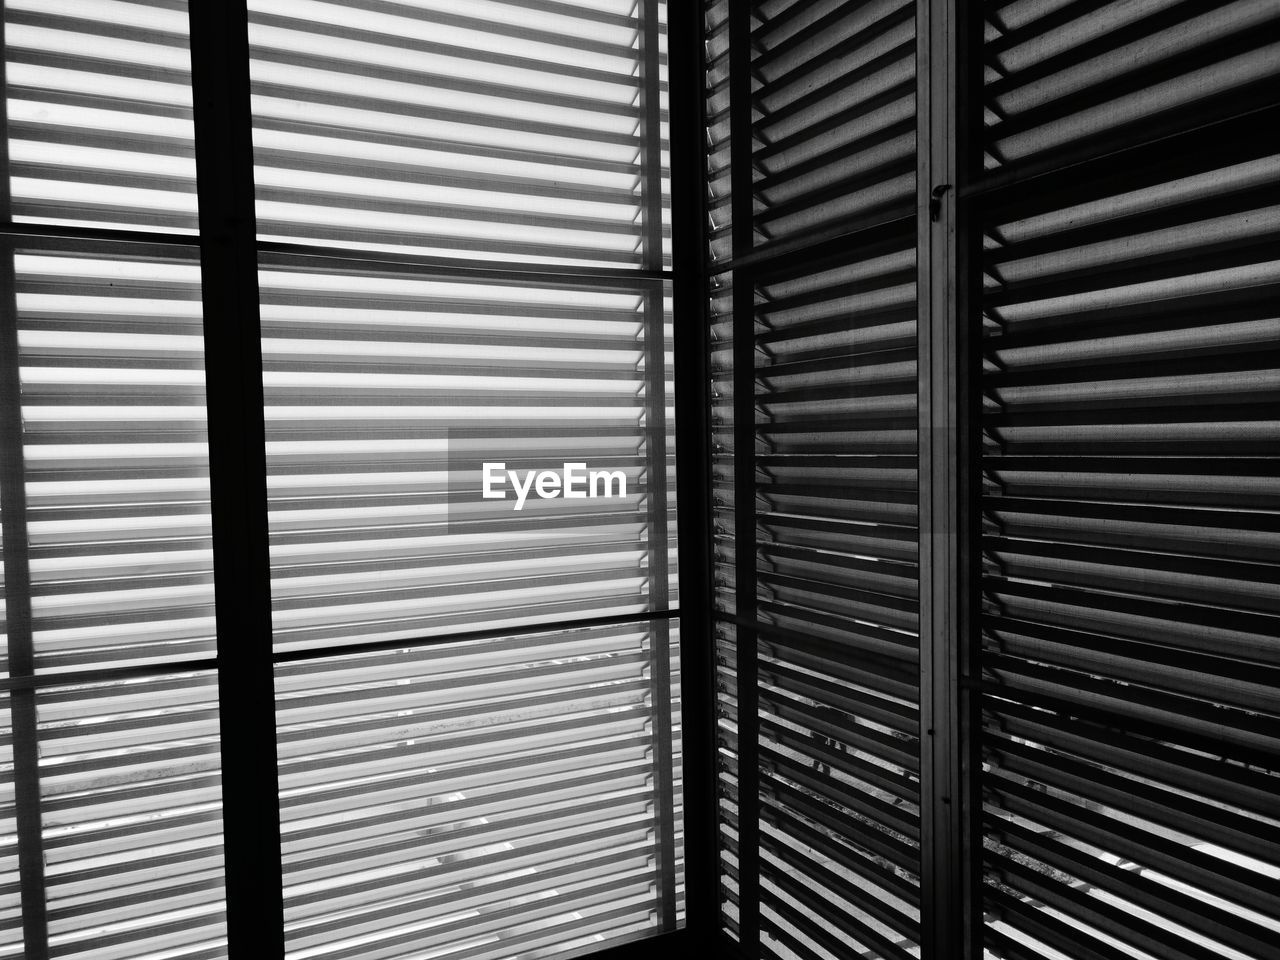 pattern, full frame, no people, backgrounds, safety, security, blinds, window, indoors, protection, close-up, day, sunlight, metal, repetition, in a row, textured, closed, privacy, iron